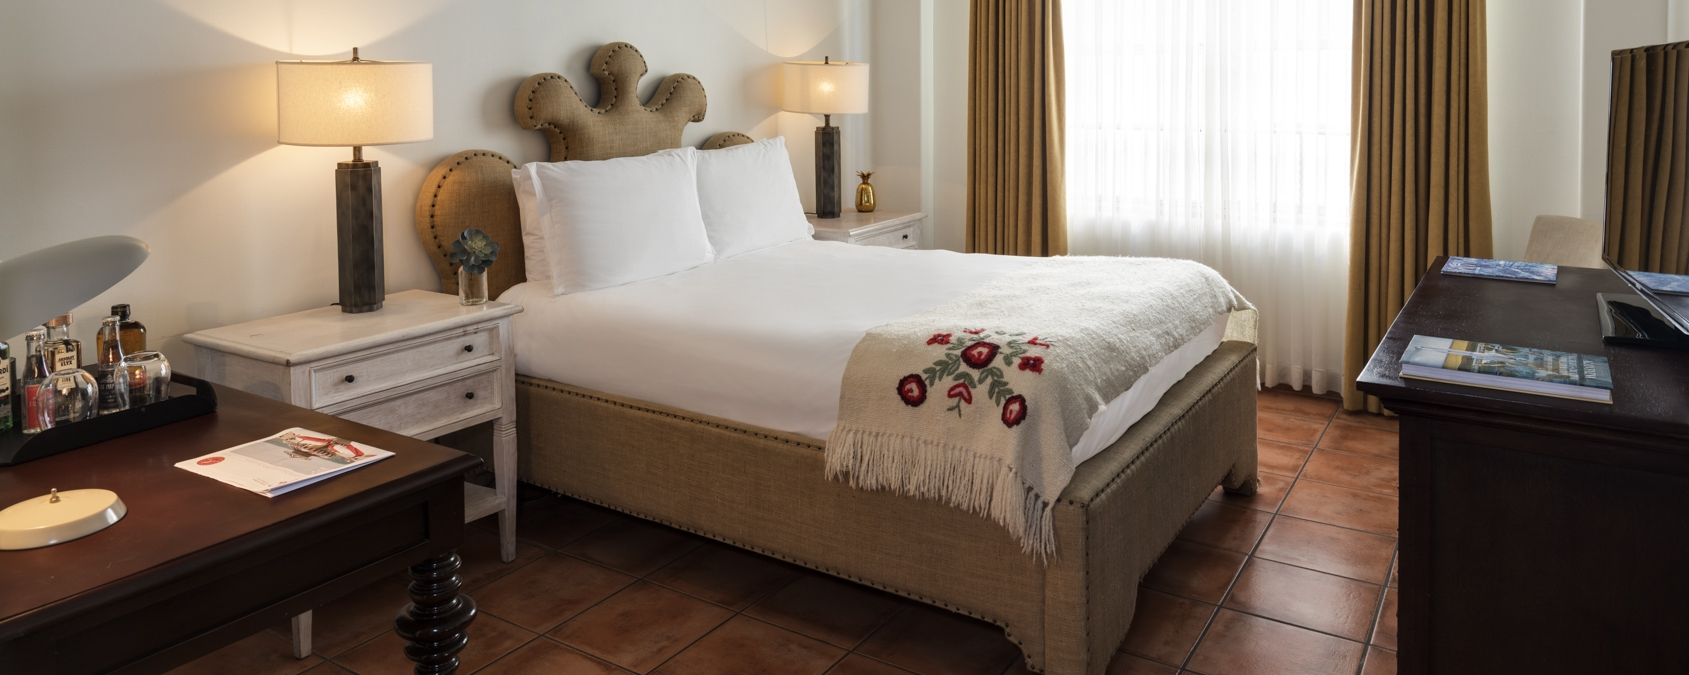 hotel bedroom with bed fitted with white linens